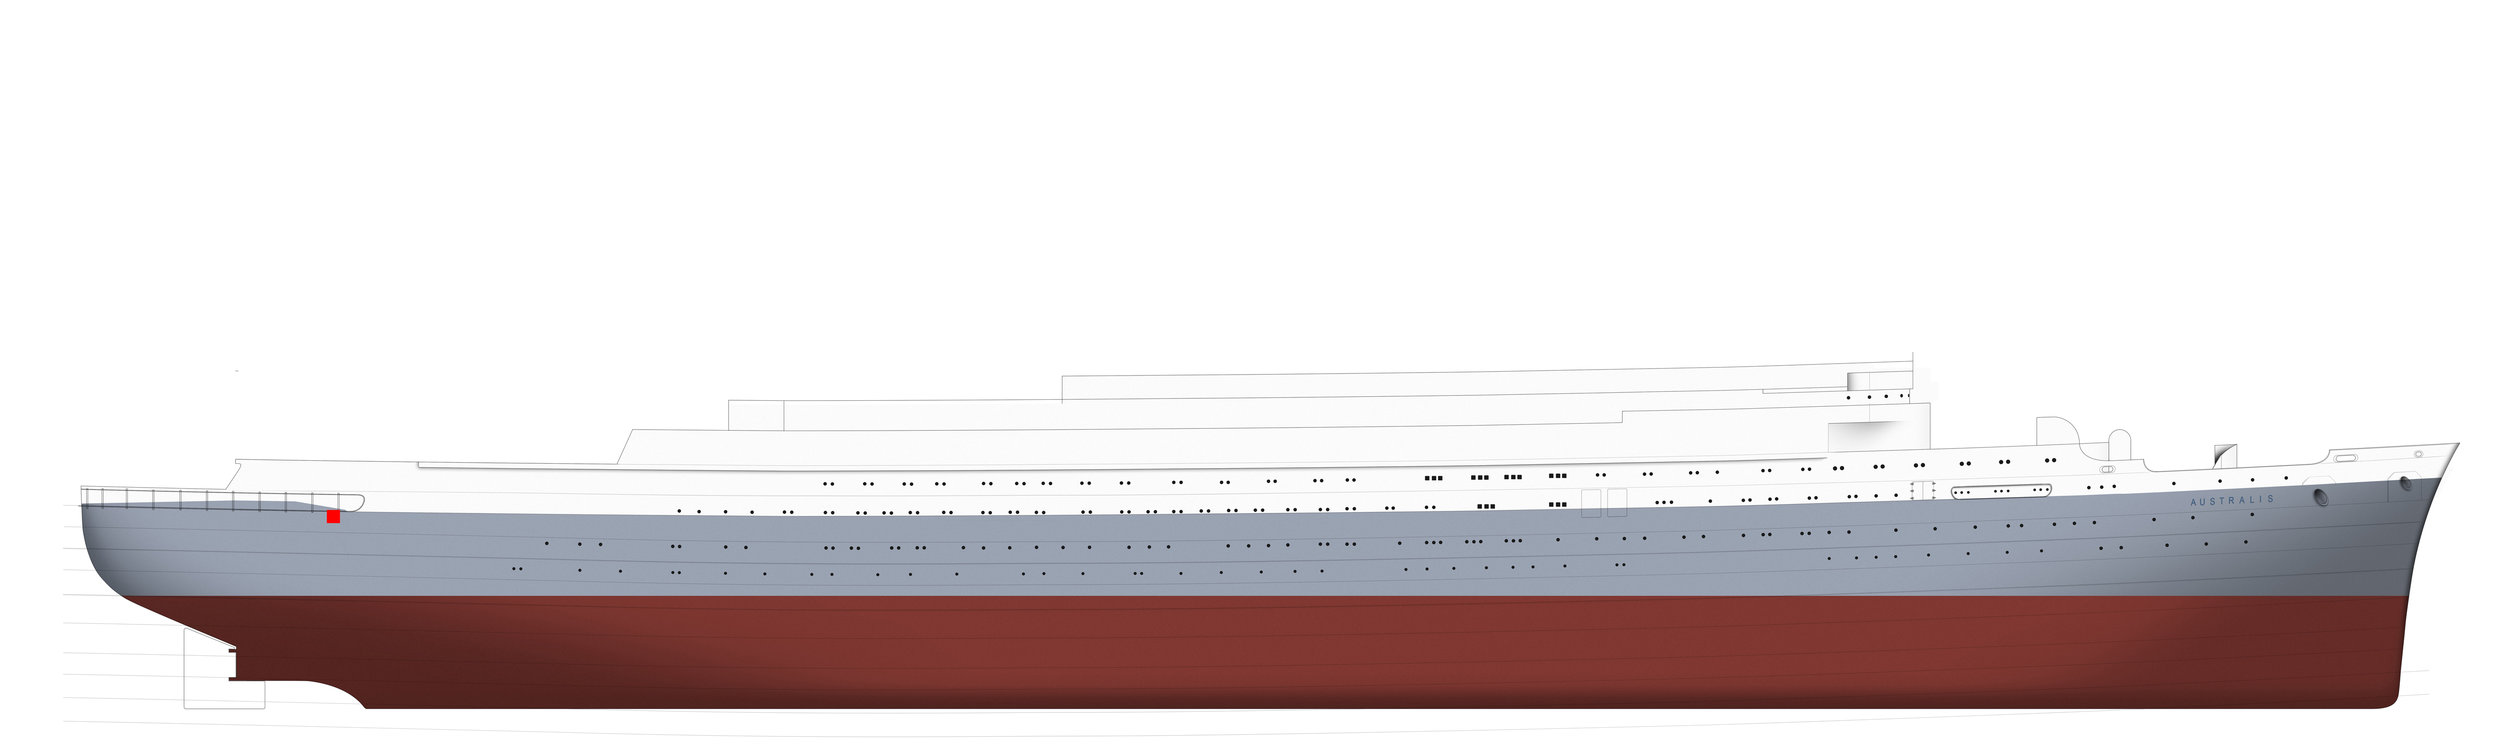 After a few days of drawing, the vessel's basic shape is complete and I can begin placing doors, portholes and hull plates.